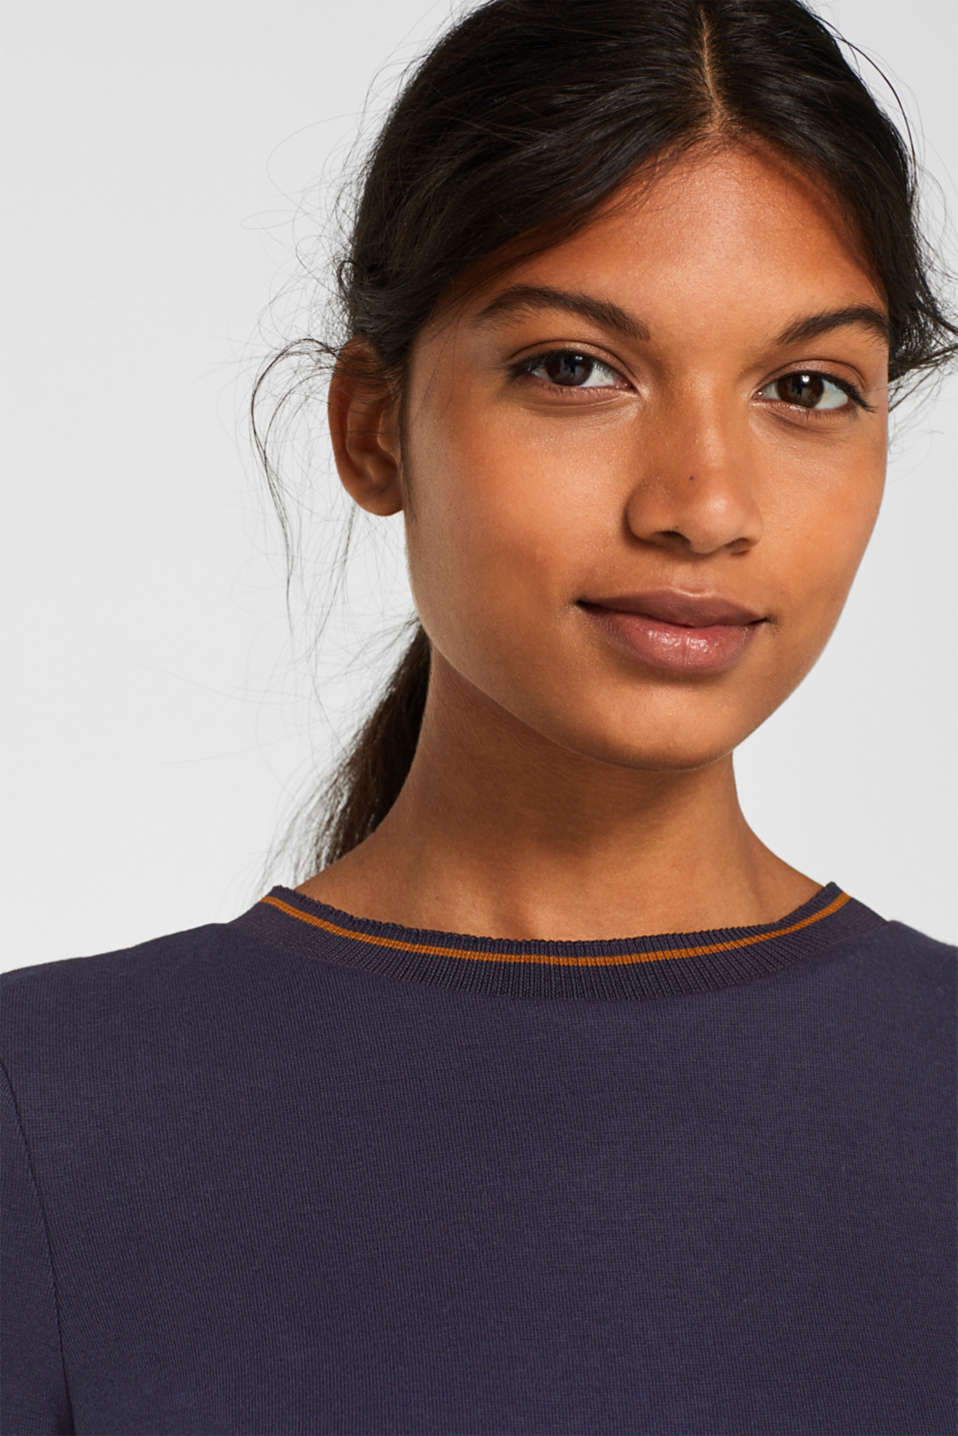 Piped stretch jersey dress, NAVY, detail image number 3